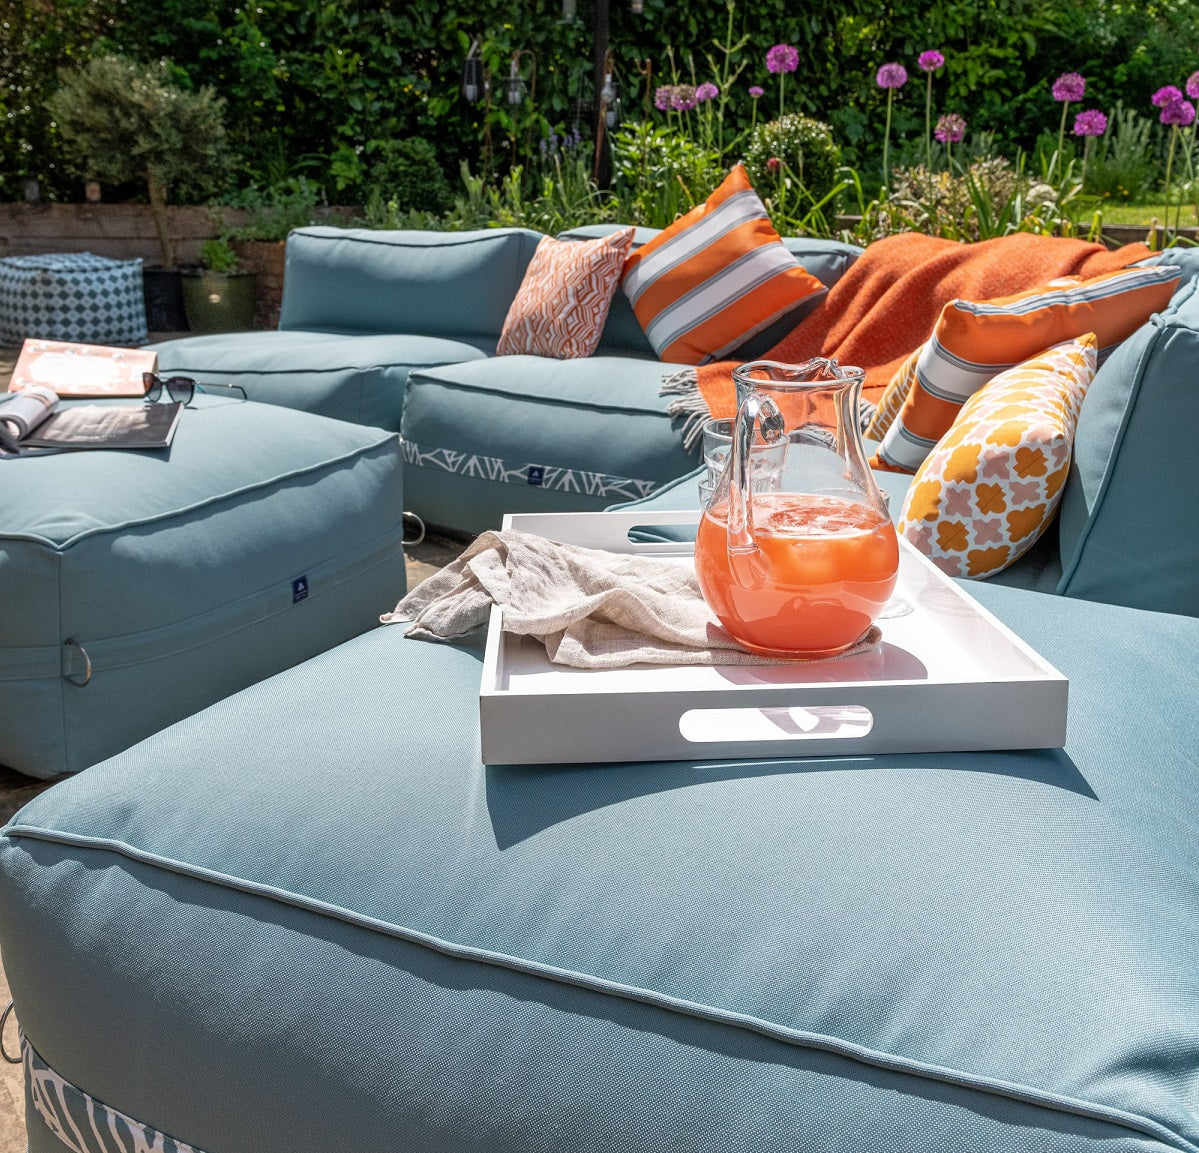 Garden sofa and ottoman in ocean blue, with bright orange weatherproof cushions